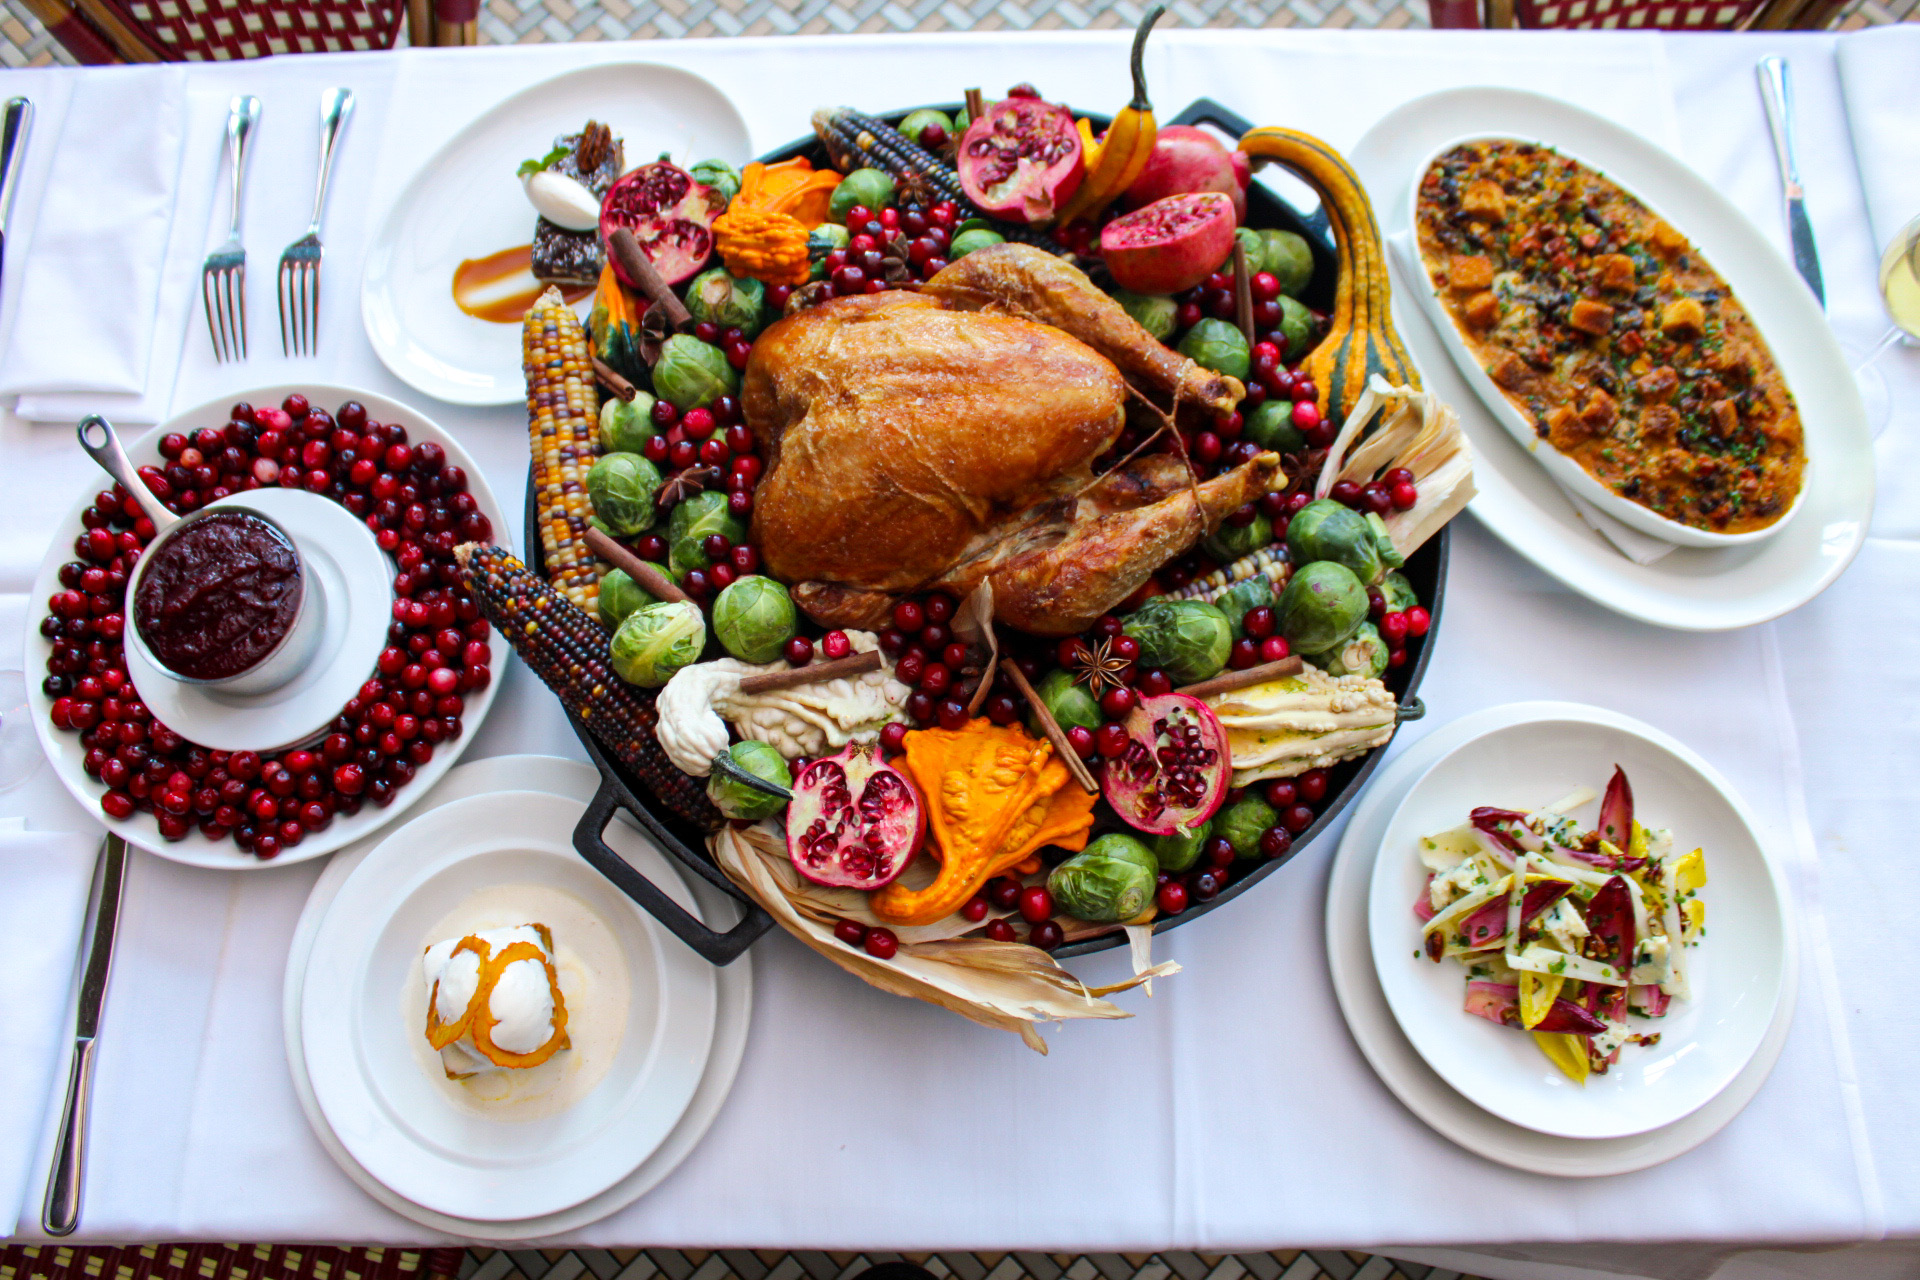 An overhead view of a turkey and sides at Mon Ami Gabi